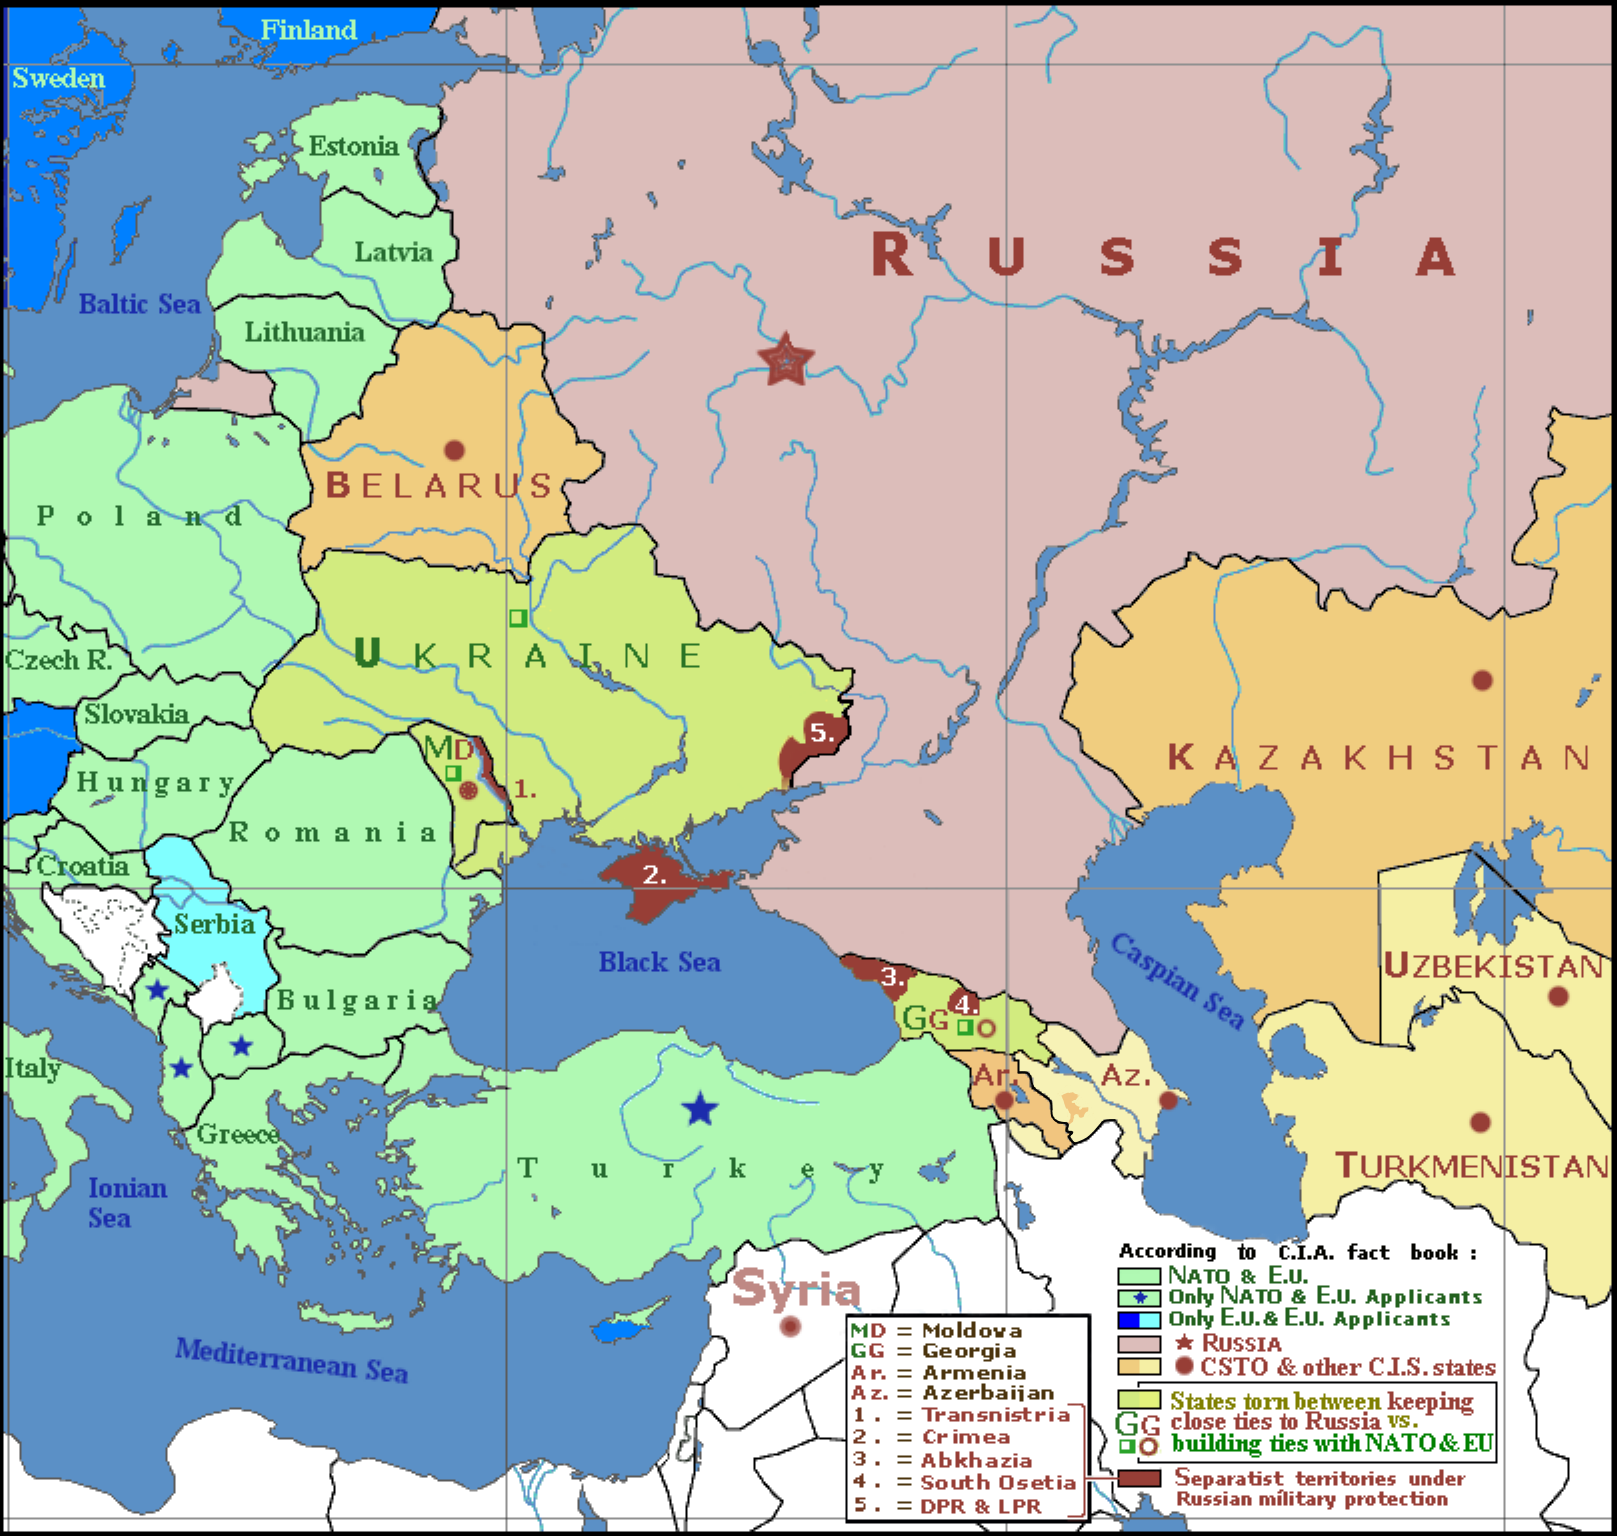 http://upload.wikimedia.org/wikipedia/commons/8/87/Geopolitics_South_Russia2.png